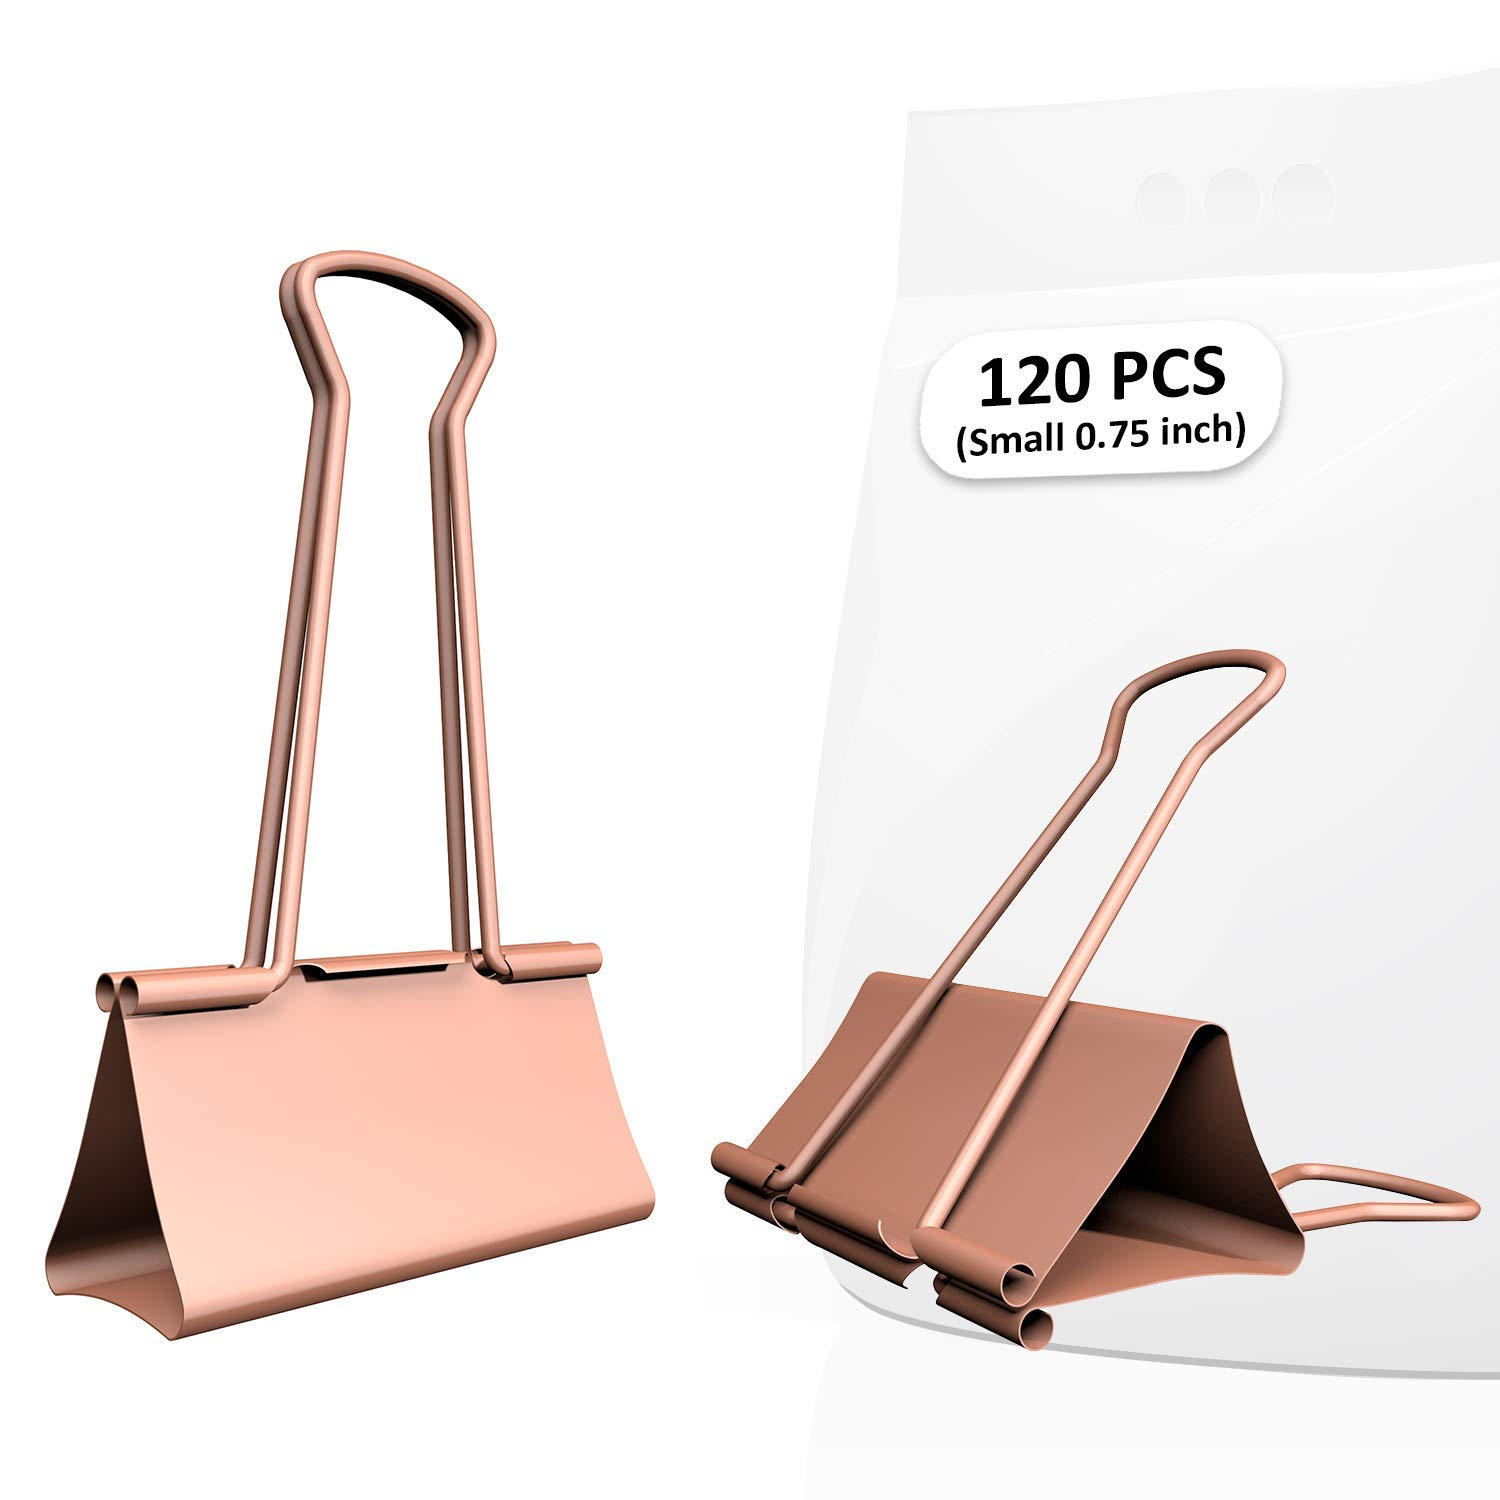 Nctinystore Binder Clips Small Metal Clamp - 3/4 in (0.75 inch)(Small, Rose Gold, 120 Count)